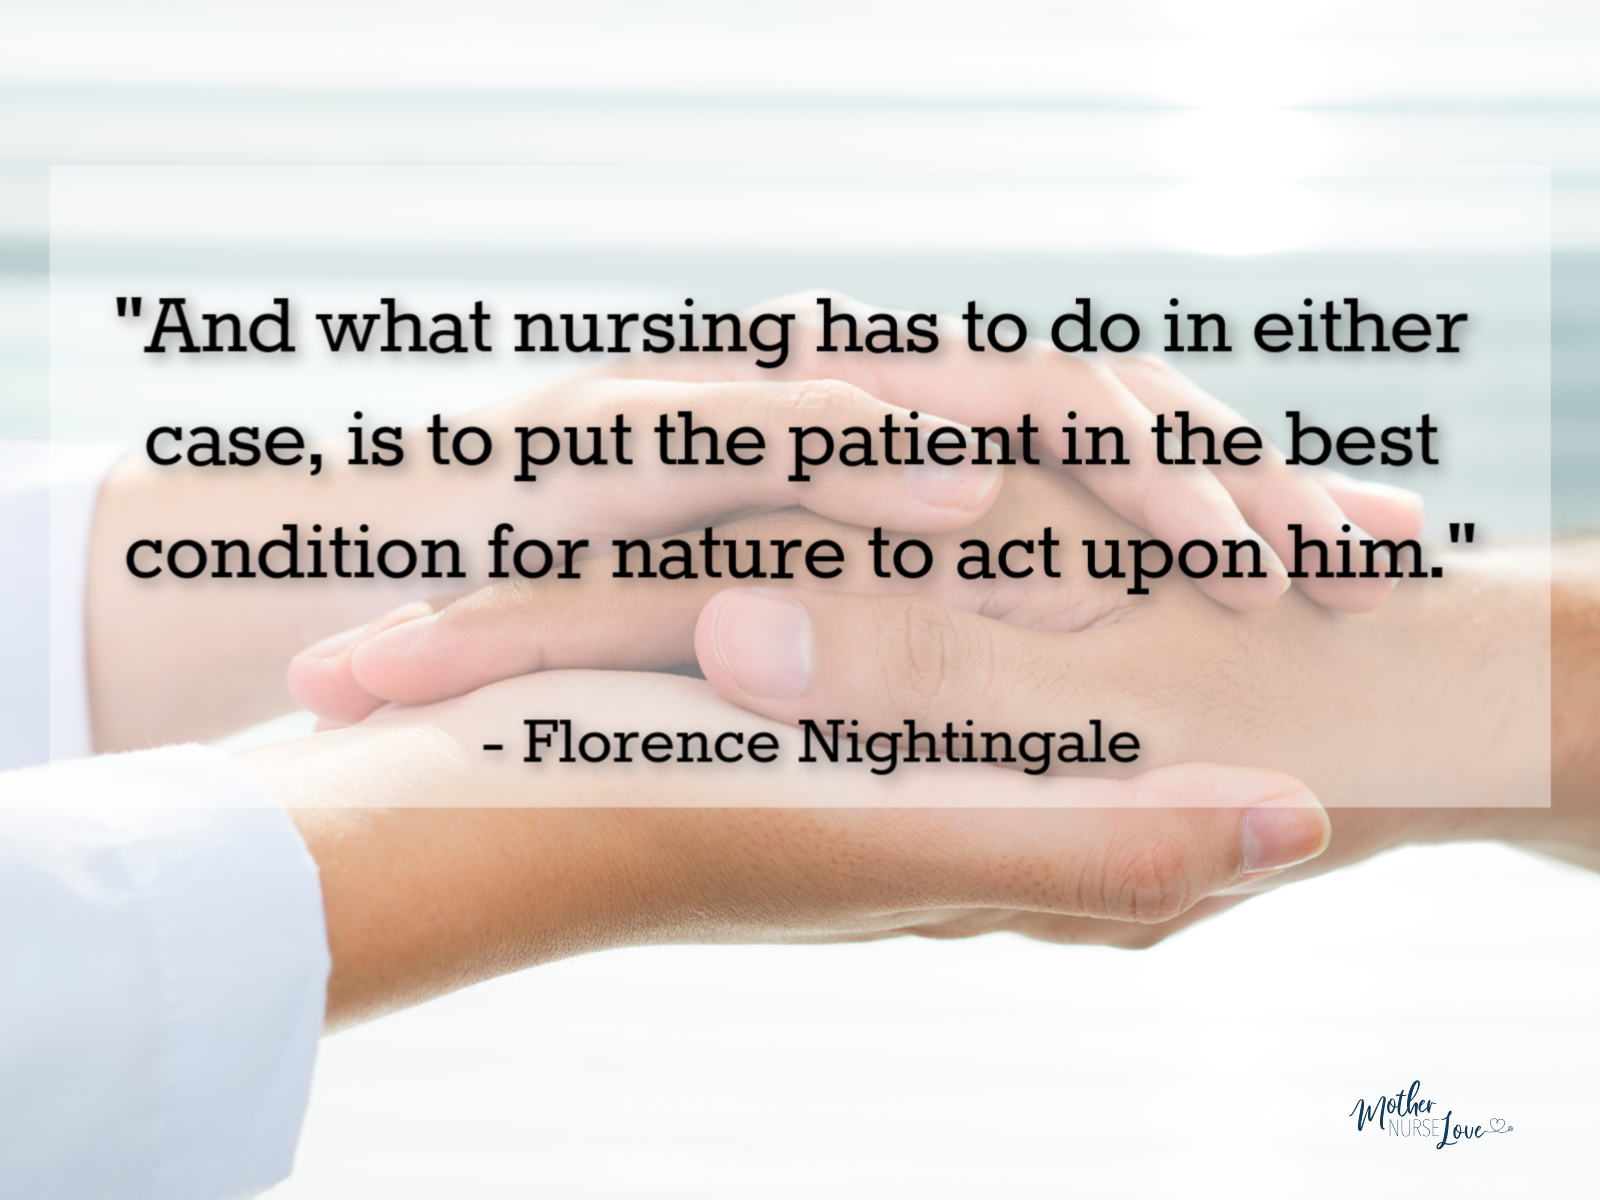 Famous Nurse Quotes- Florence Nightingale